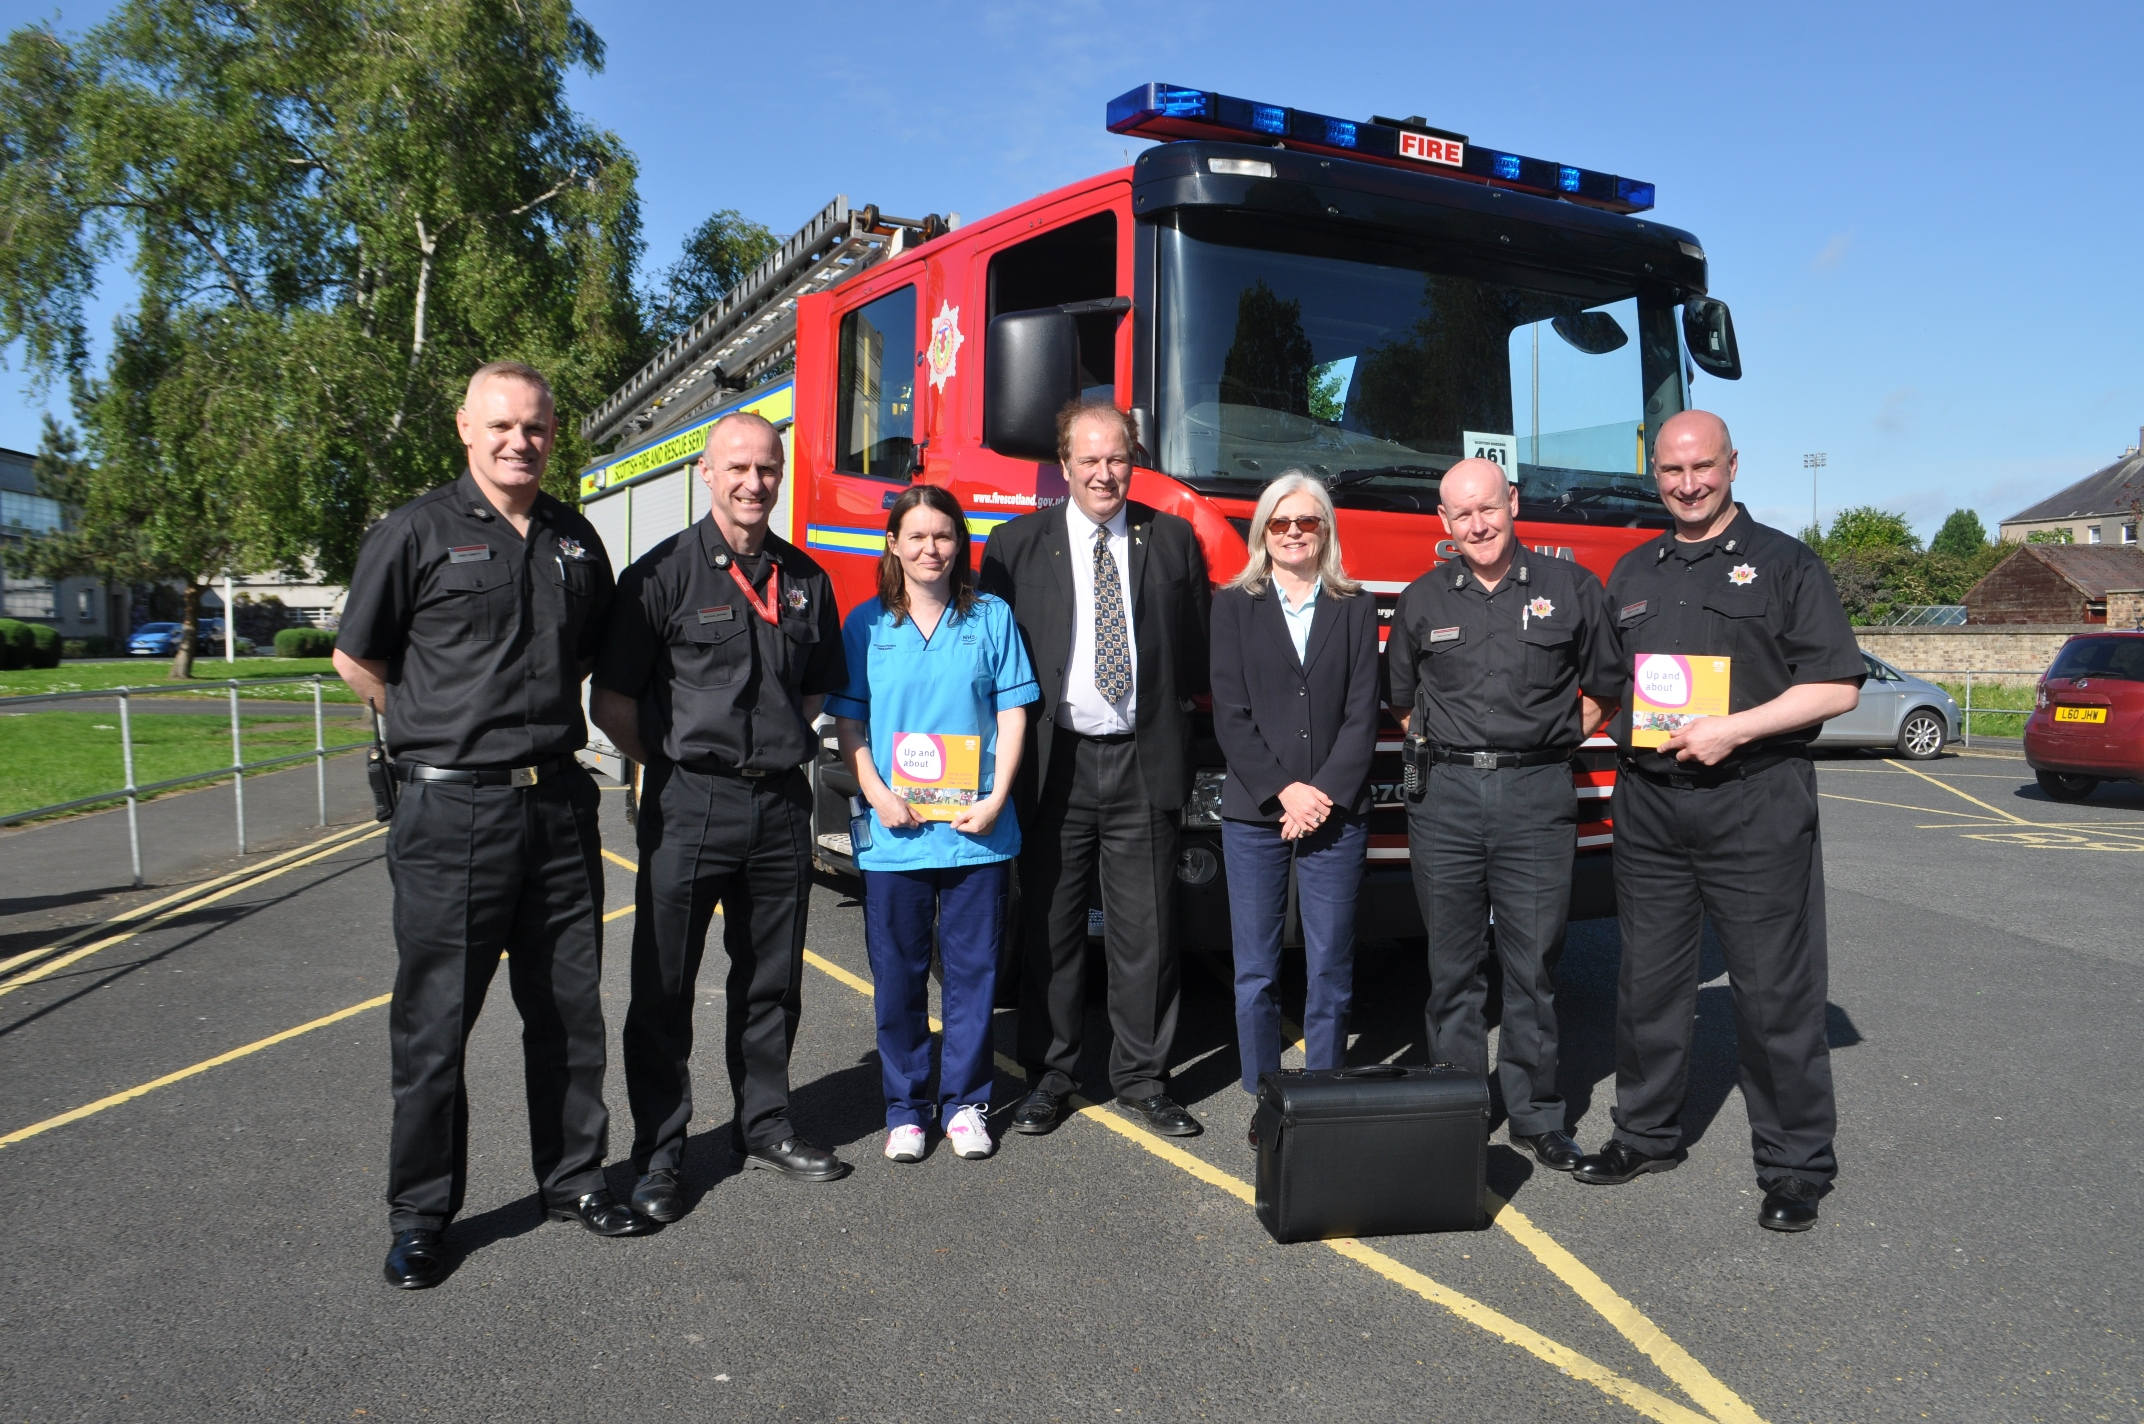 SFRS support Living Safely in the Home initiative in Borders